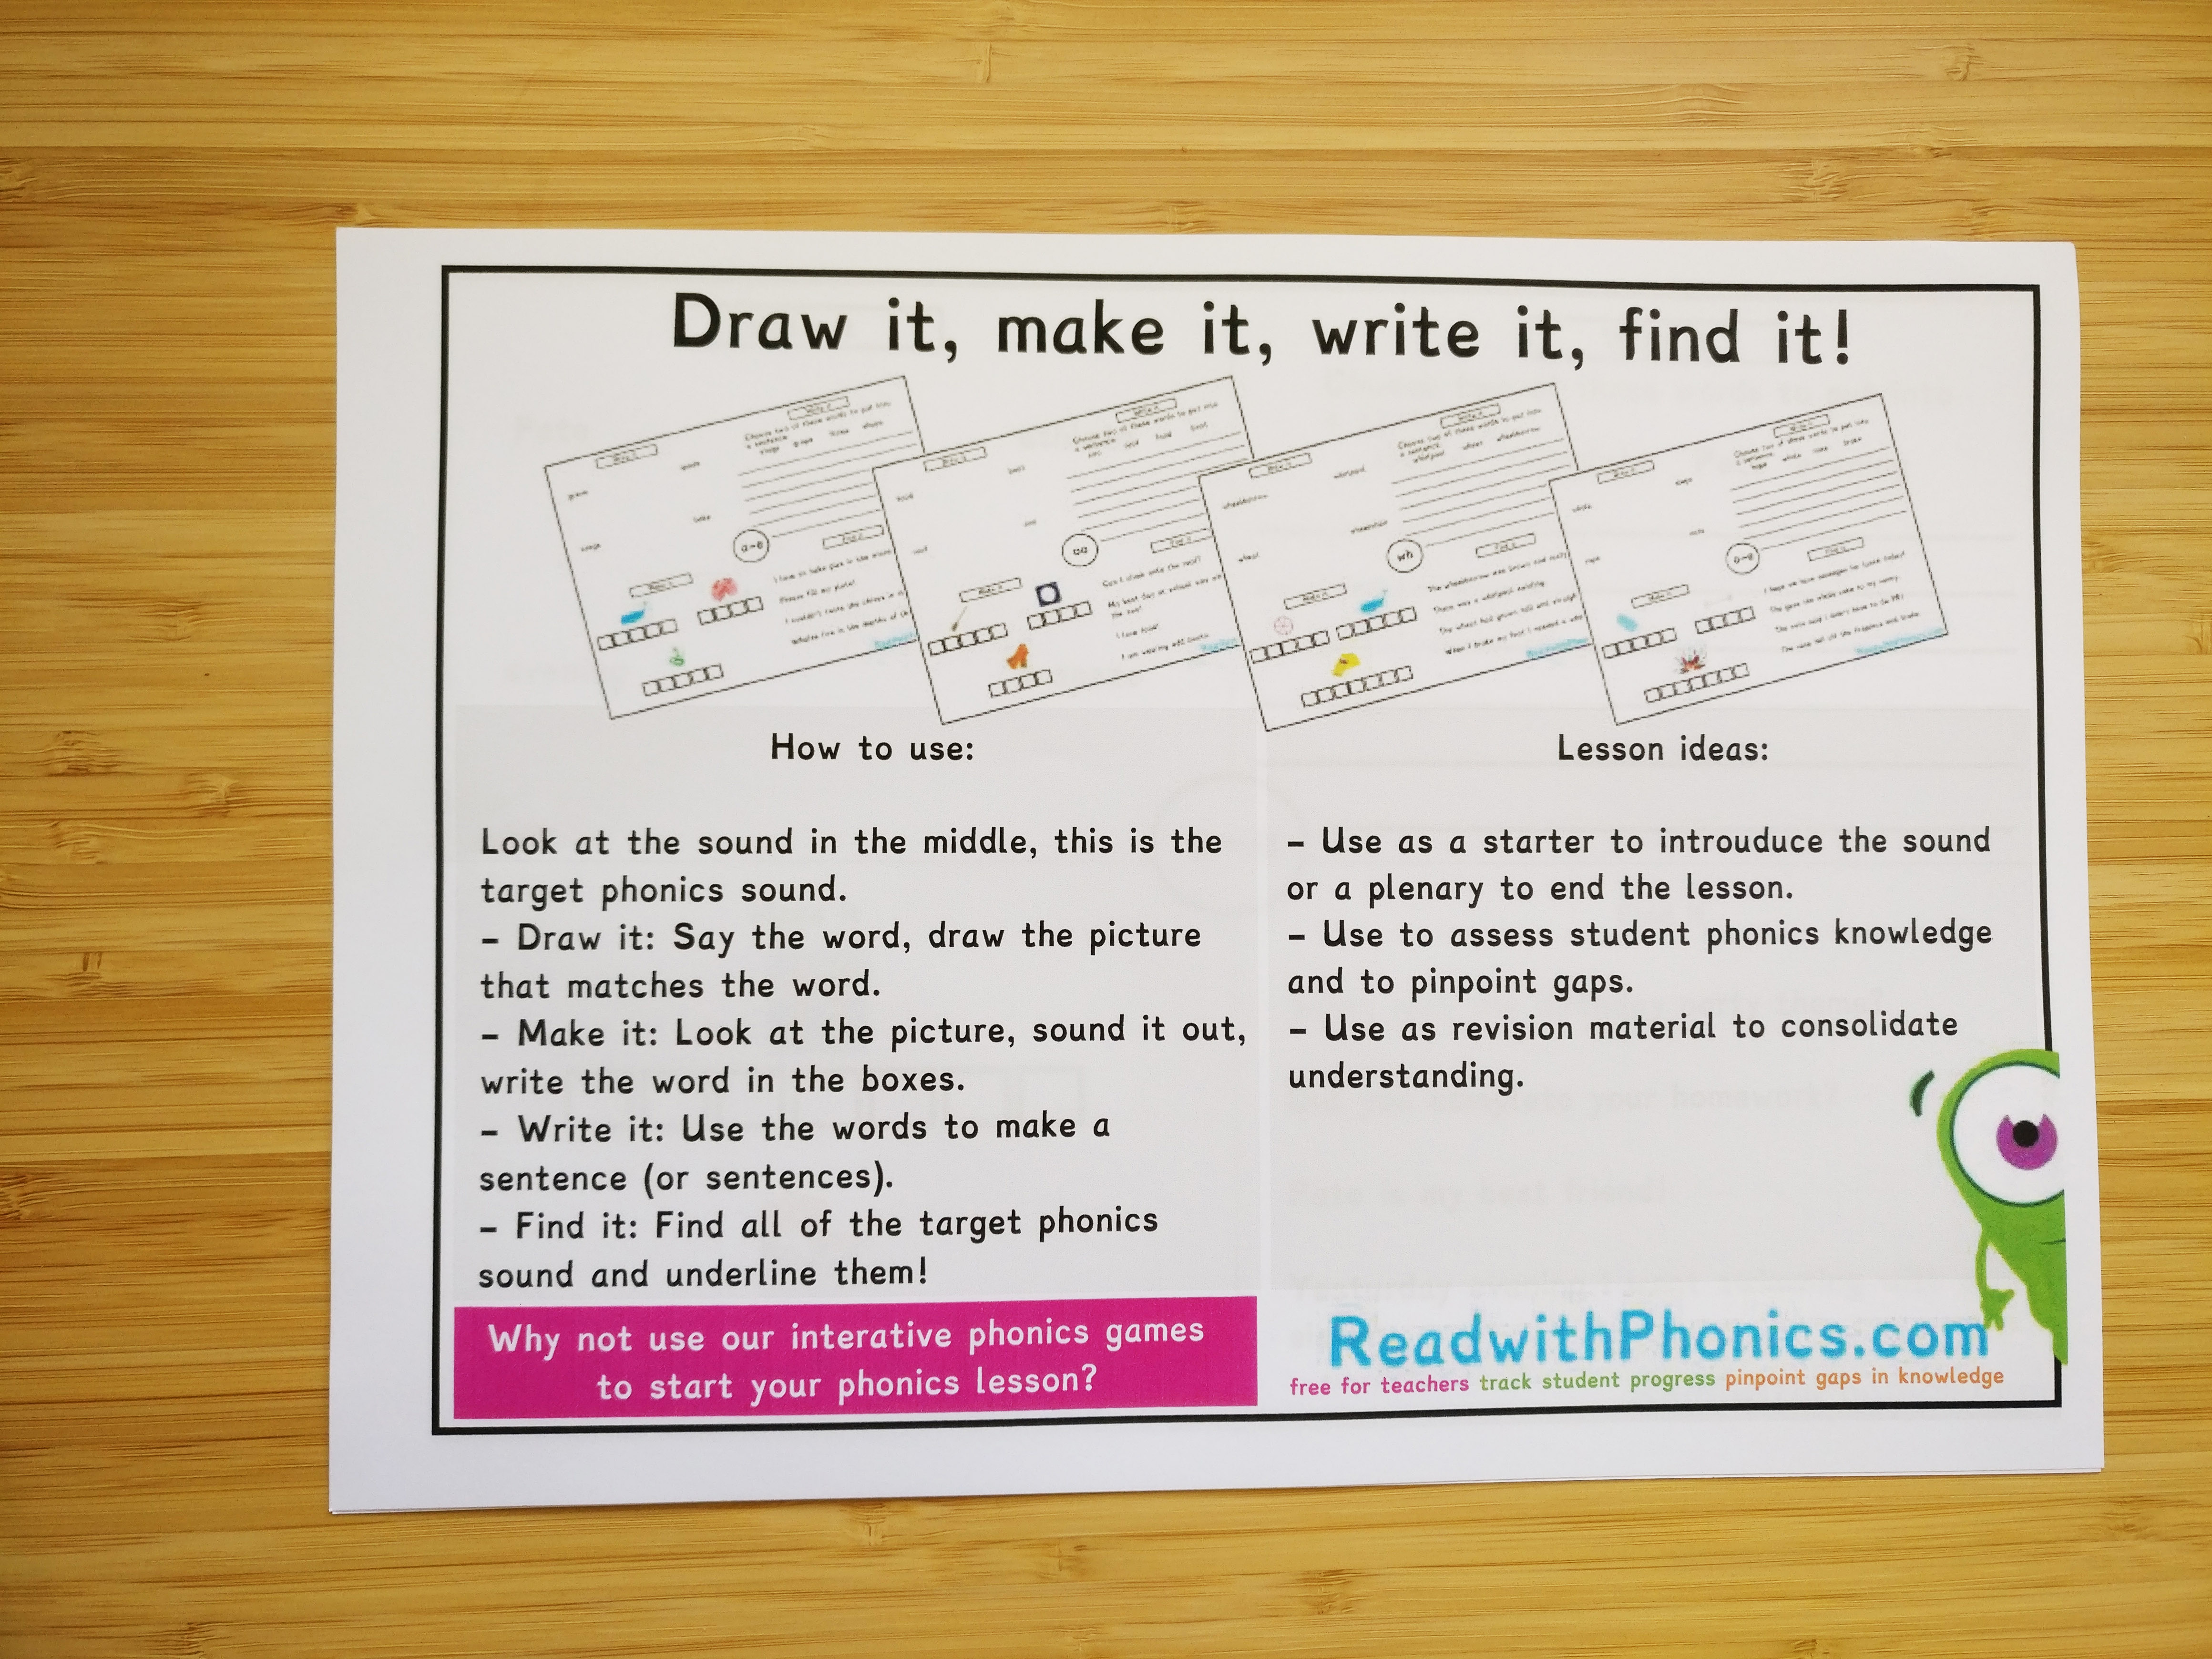 Draw it, make it, write it, find it! Age 5+ | ReadwithPhonics - Learn to  Read with Phonics